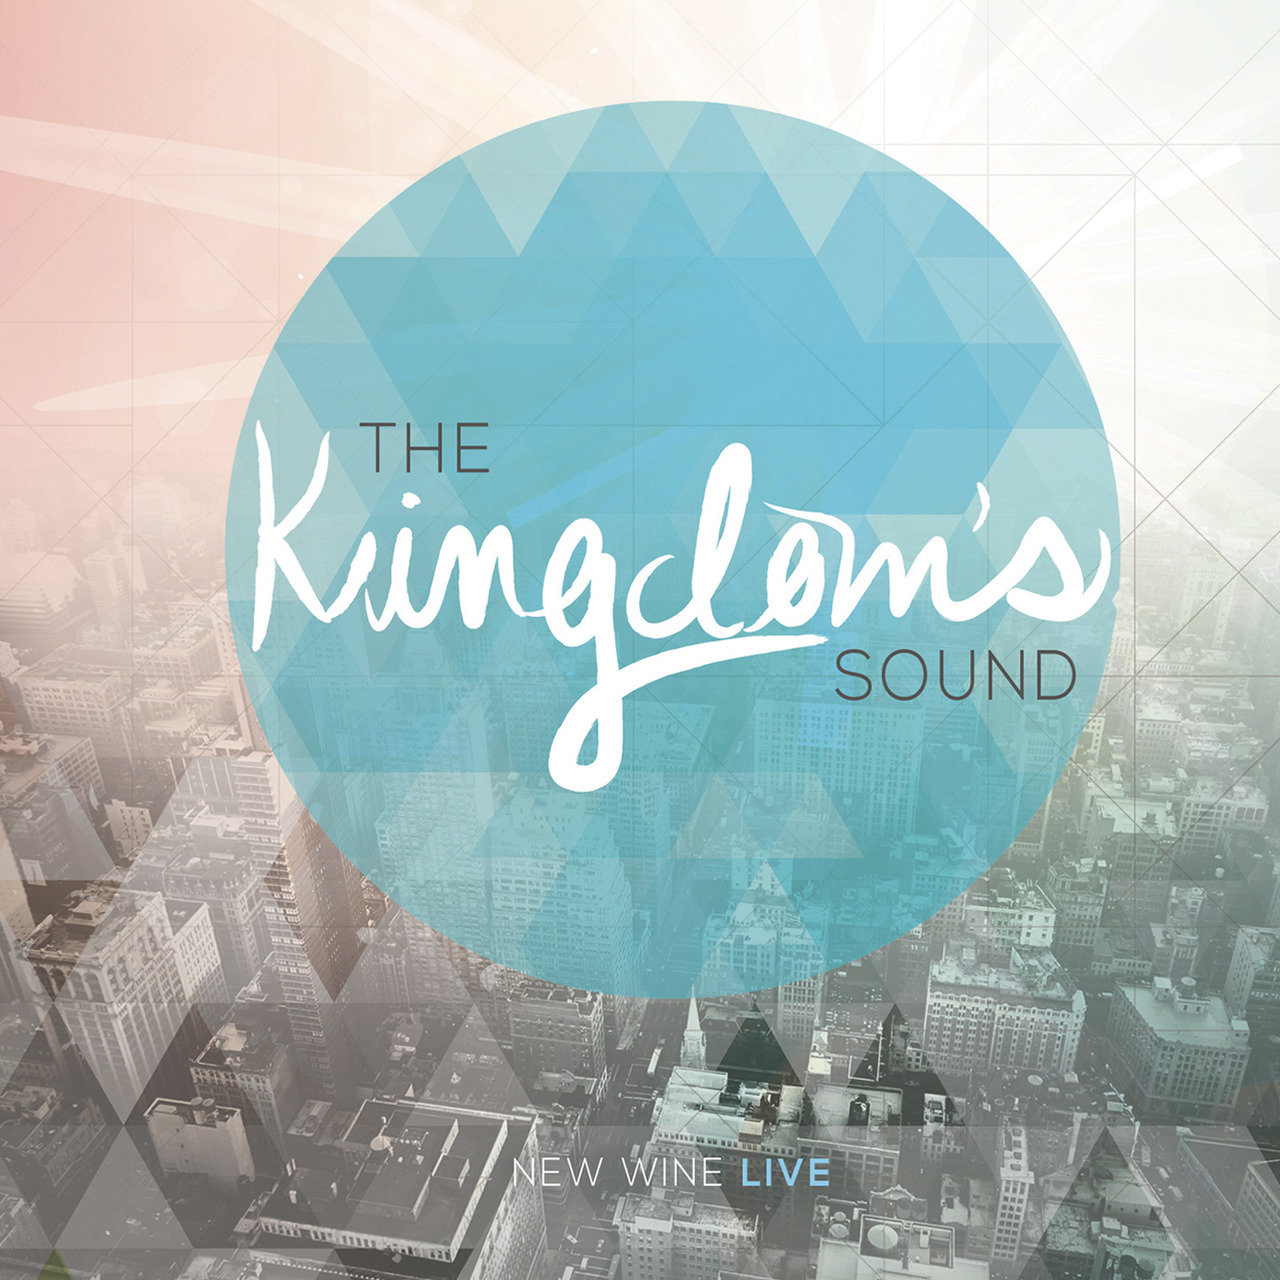 The Kingdom's Sound